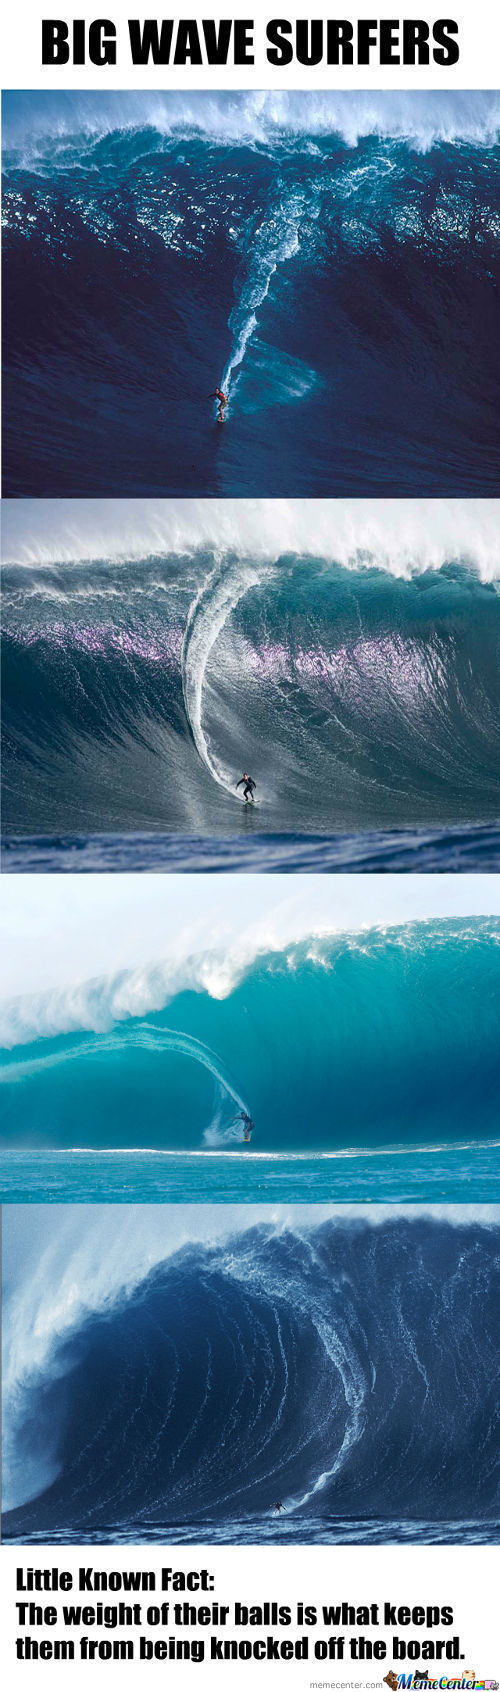 Some Surfing Trivia